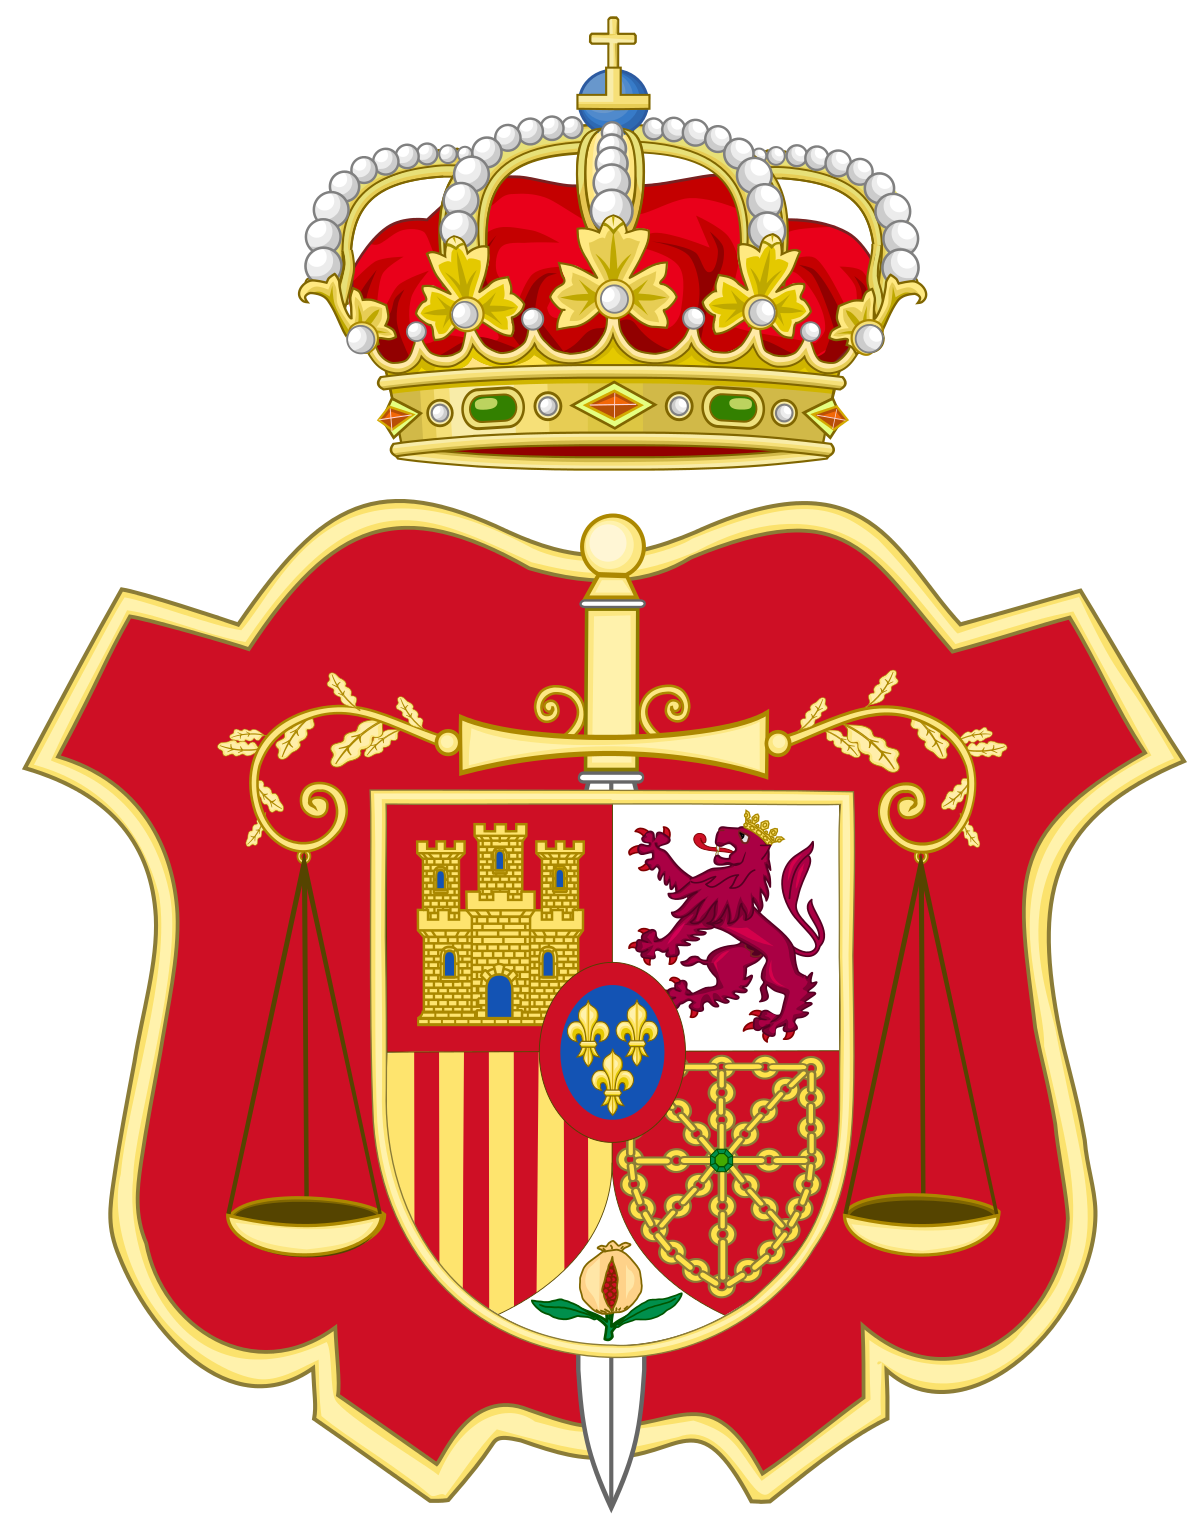 Laws clipart judicial power. General council of the